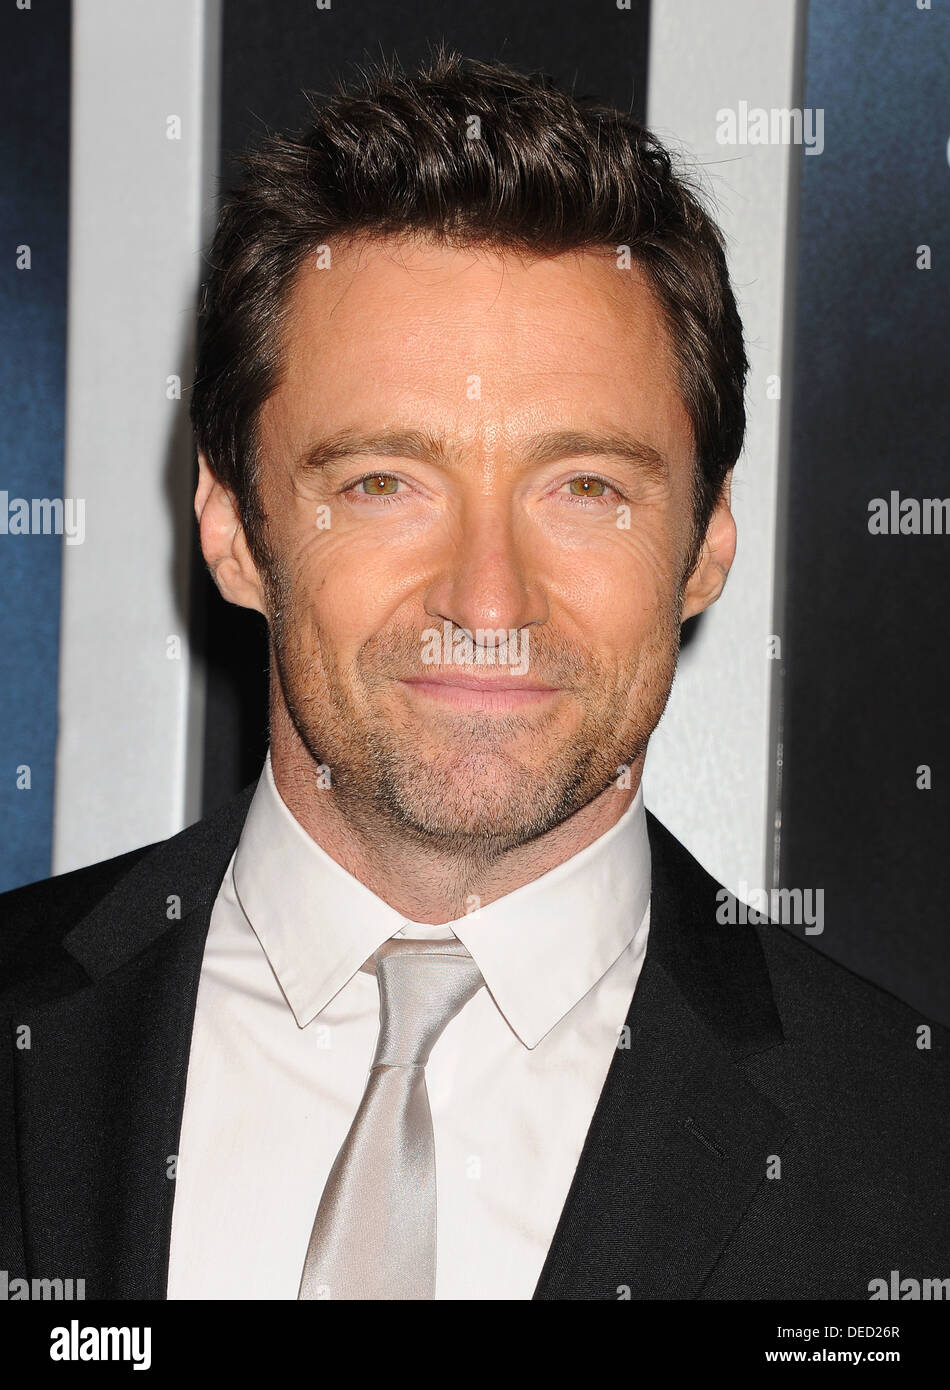 HUGH JACKMAN Australian film actor in September 2013. Photo Jeffrey Mayer - Stock Image